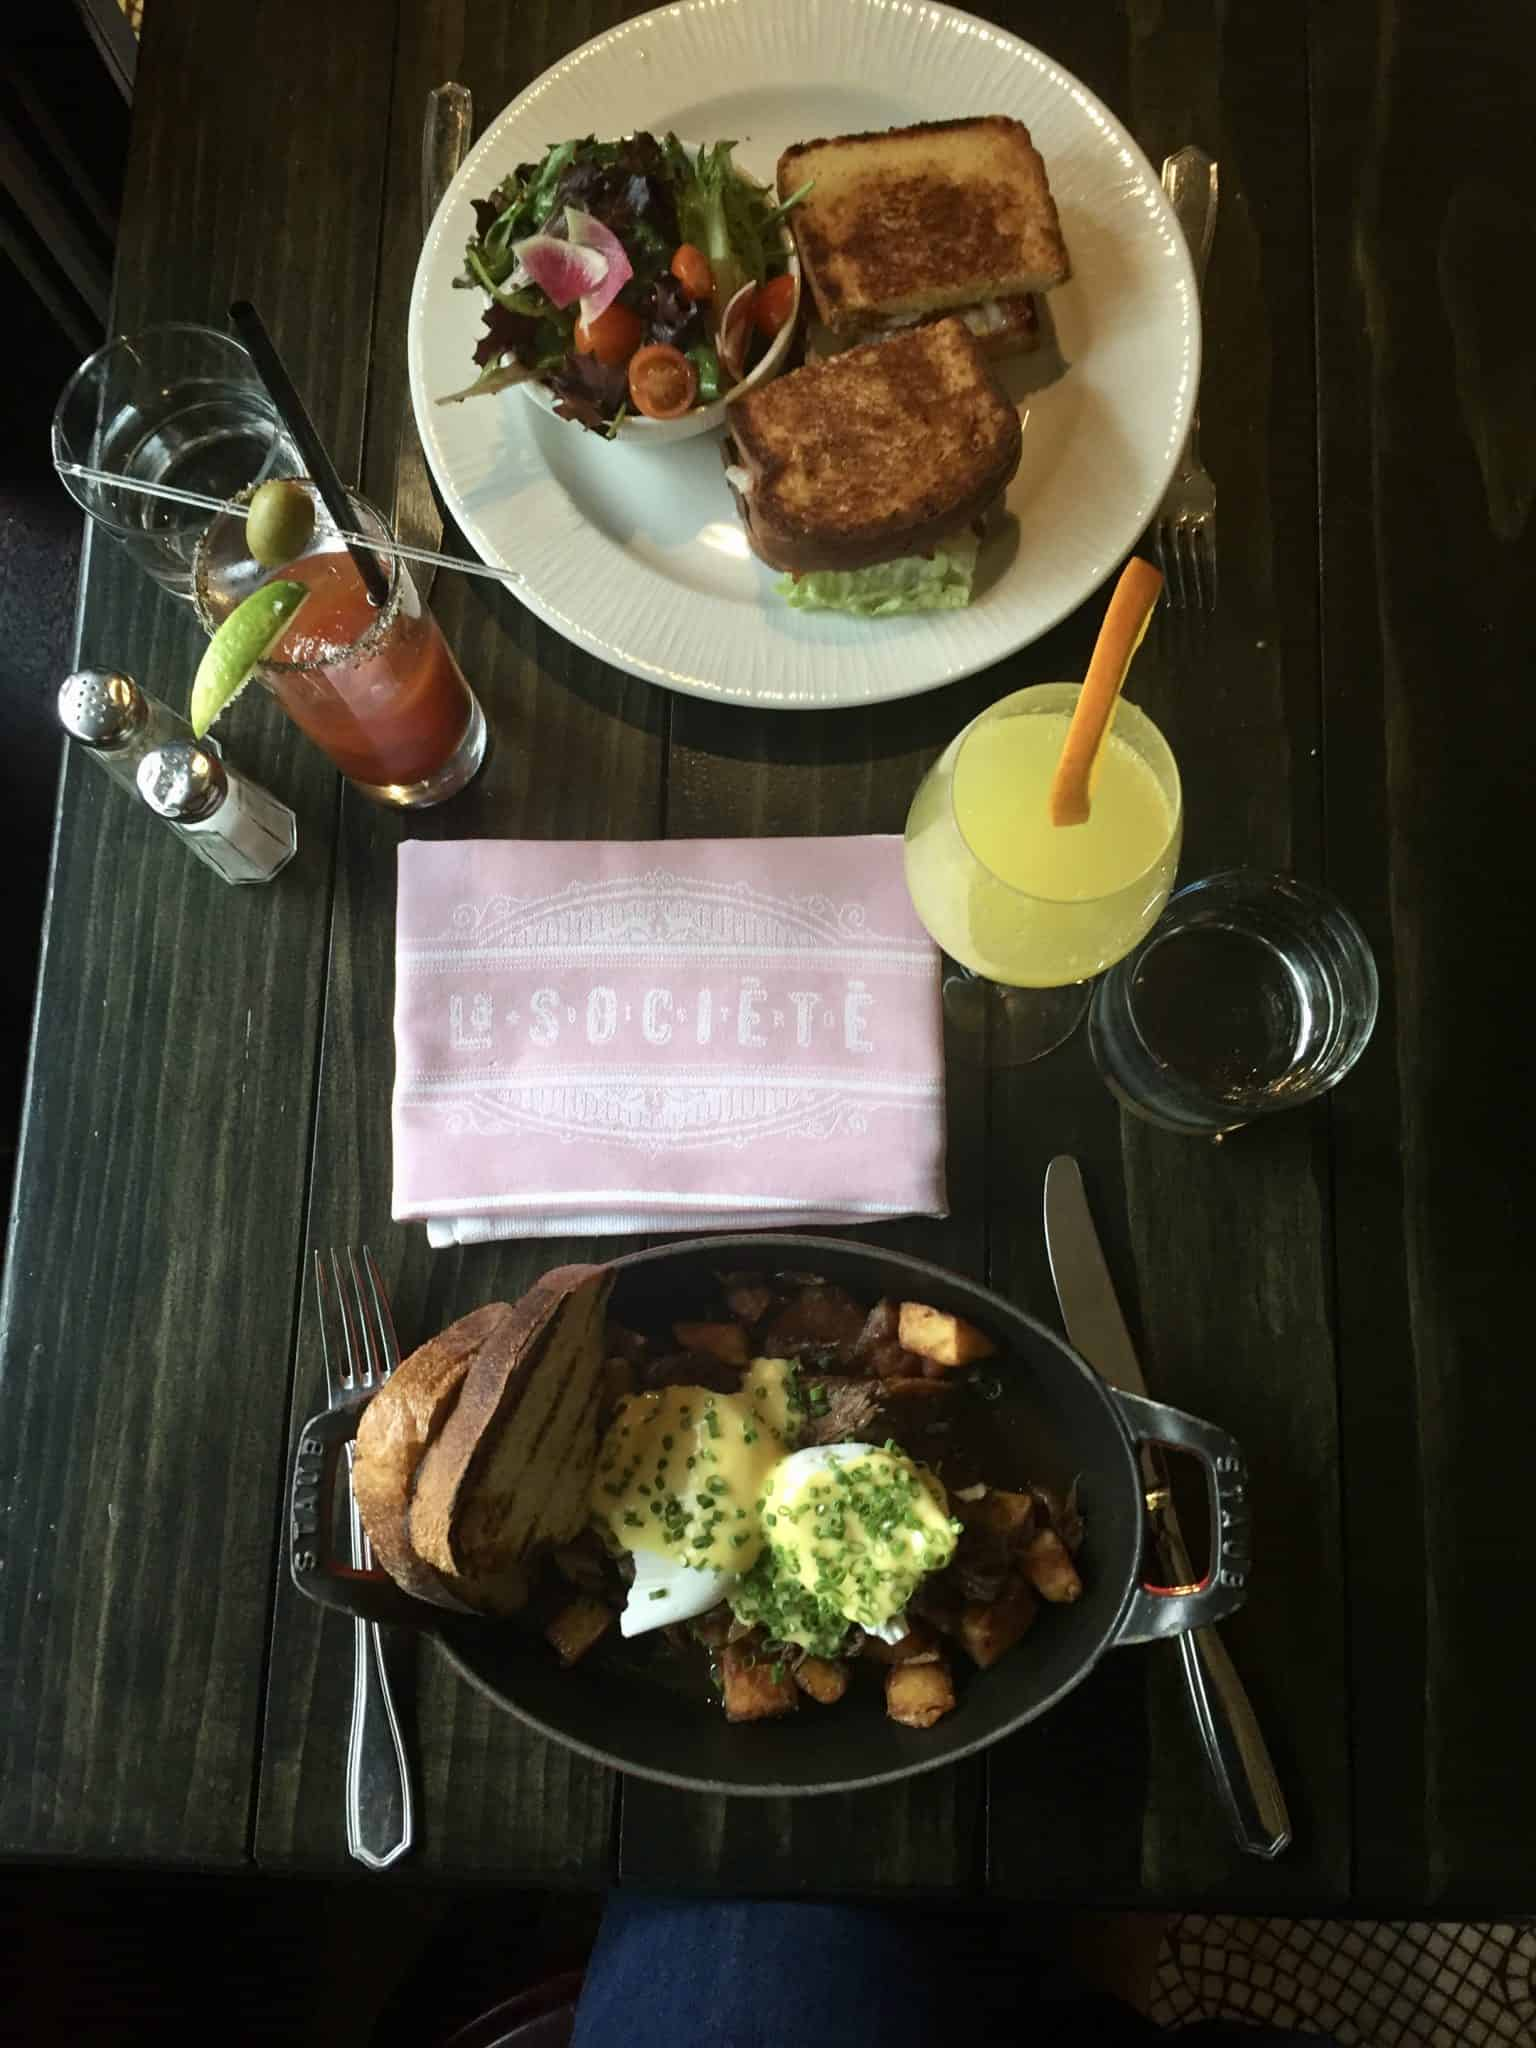 French Bistro Brunching in the Heart of Yorkville, Toronto at La Societe